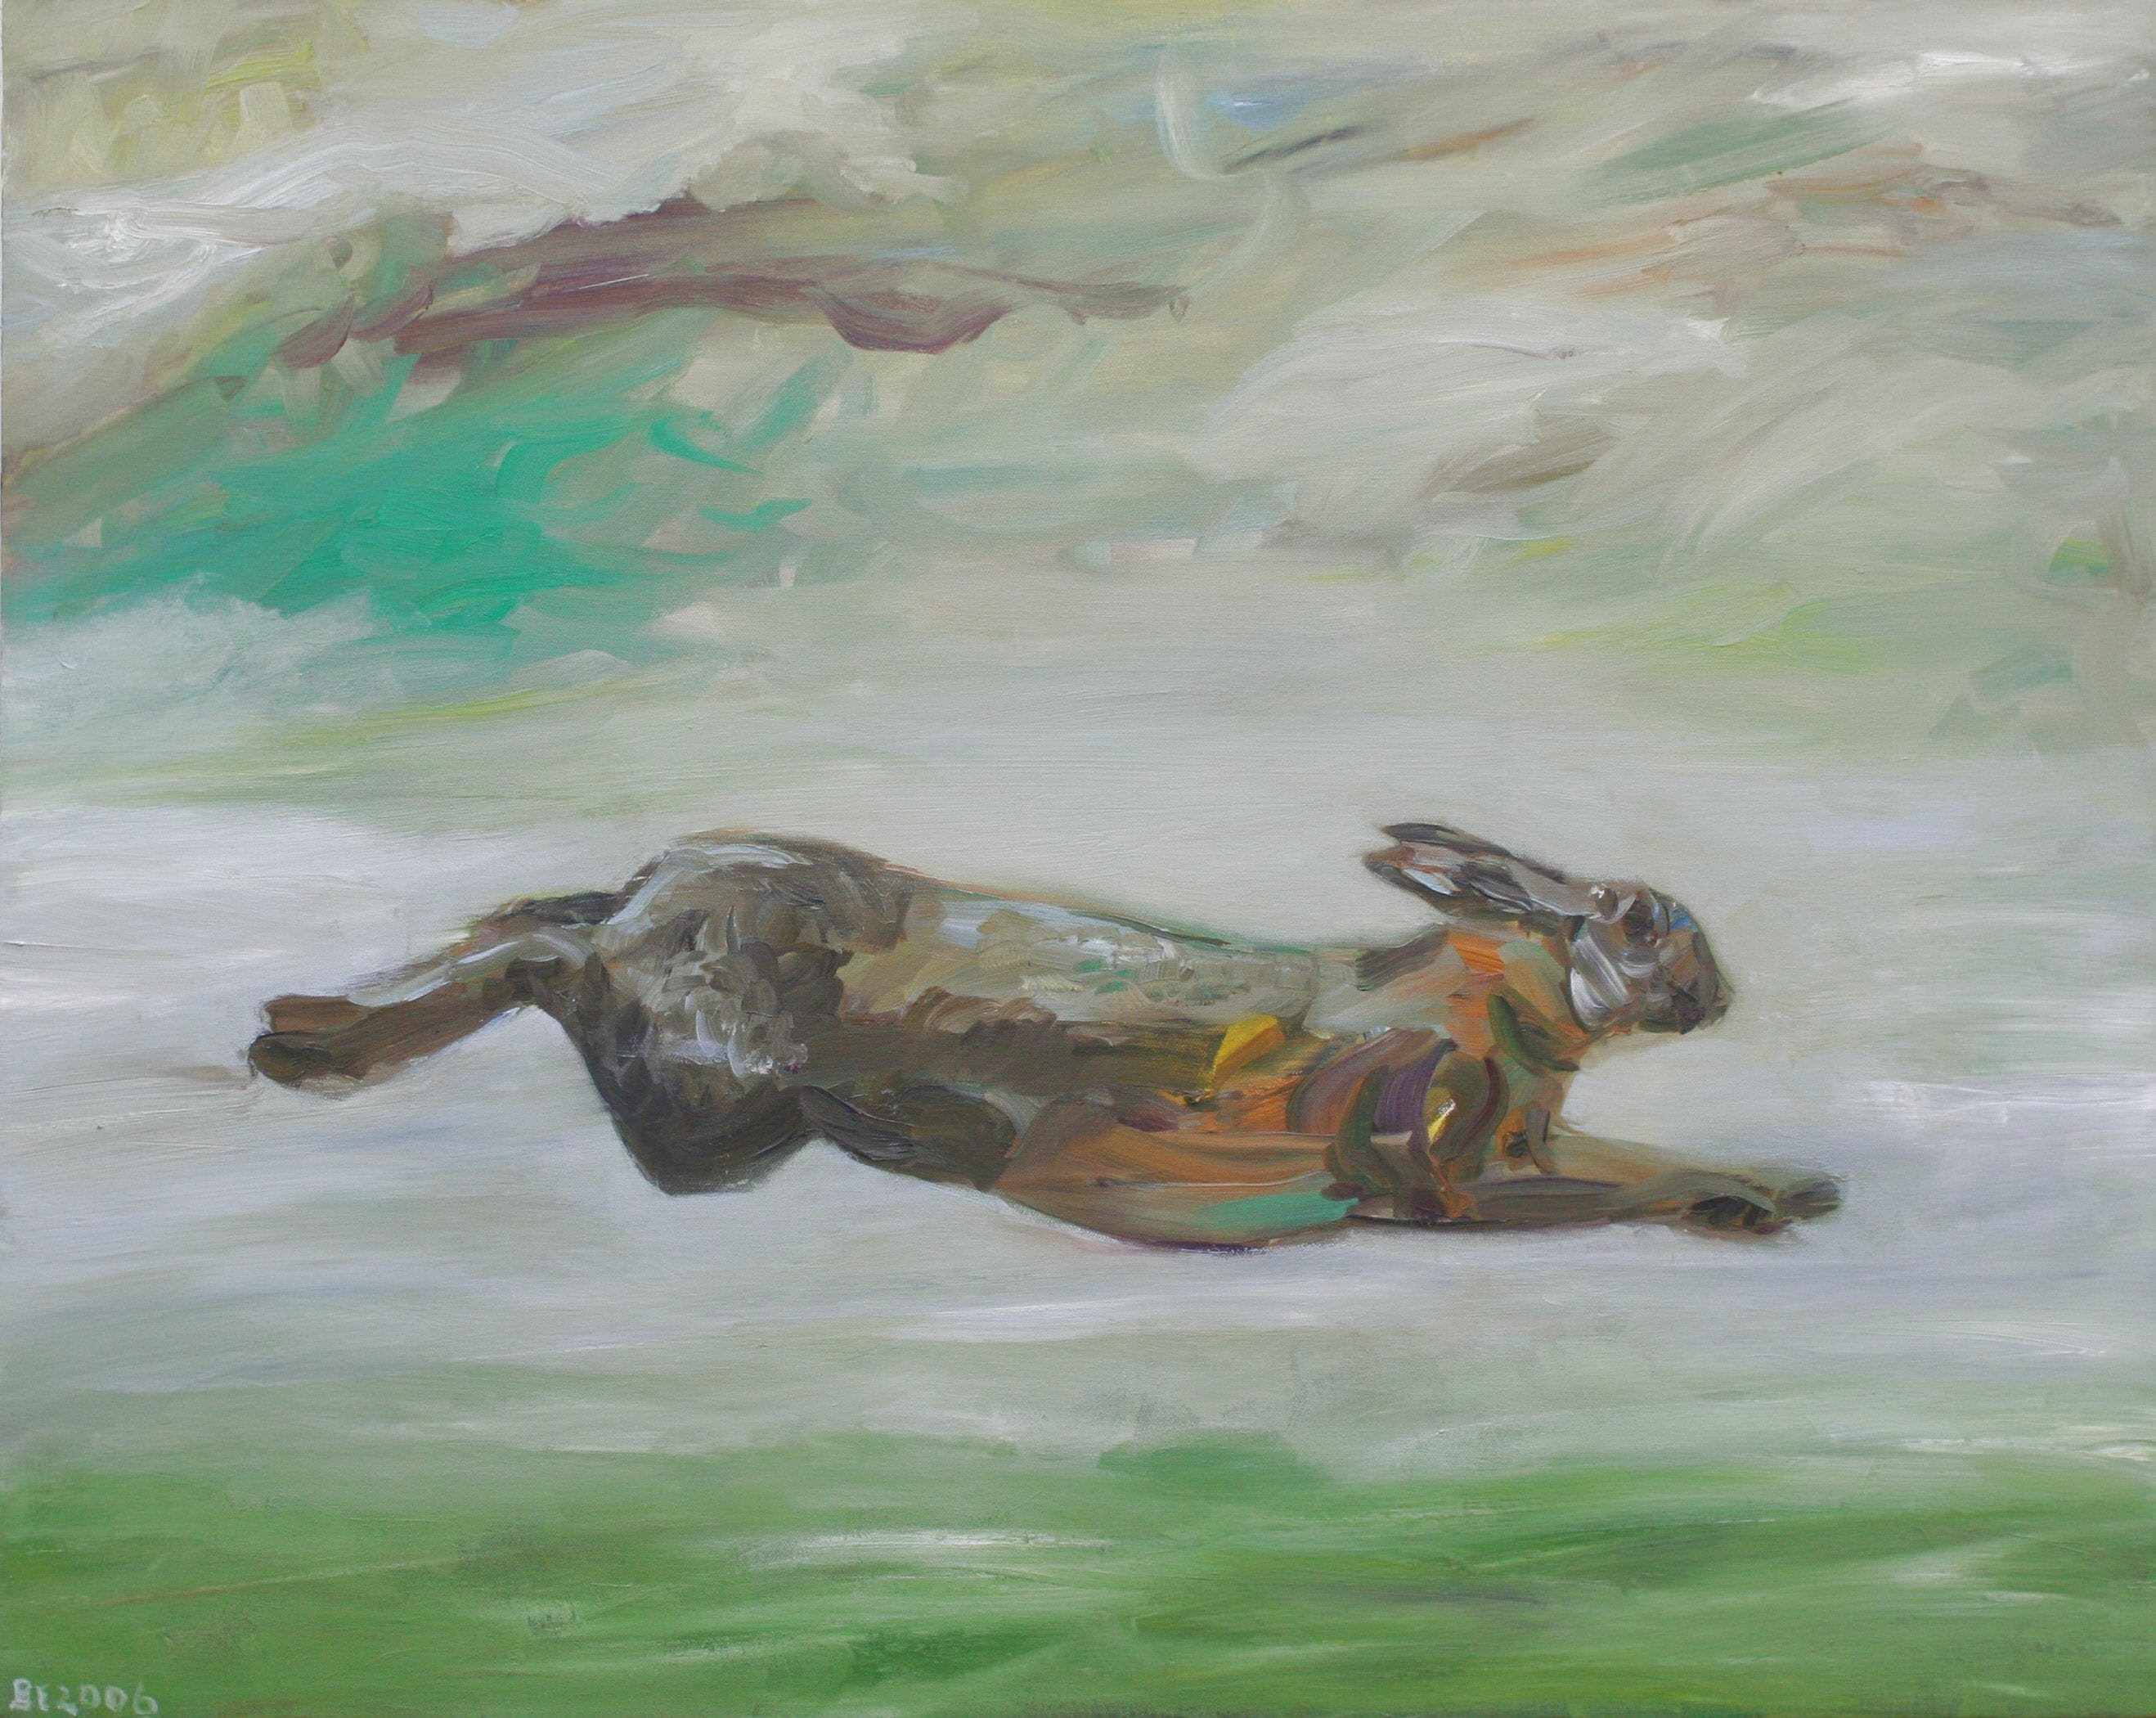 Sabine Beckmann, Hare Jumping out of Time, oil on linen, 80 x 100 cm, 2006